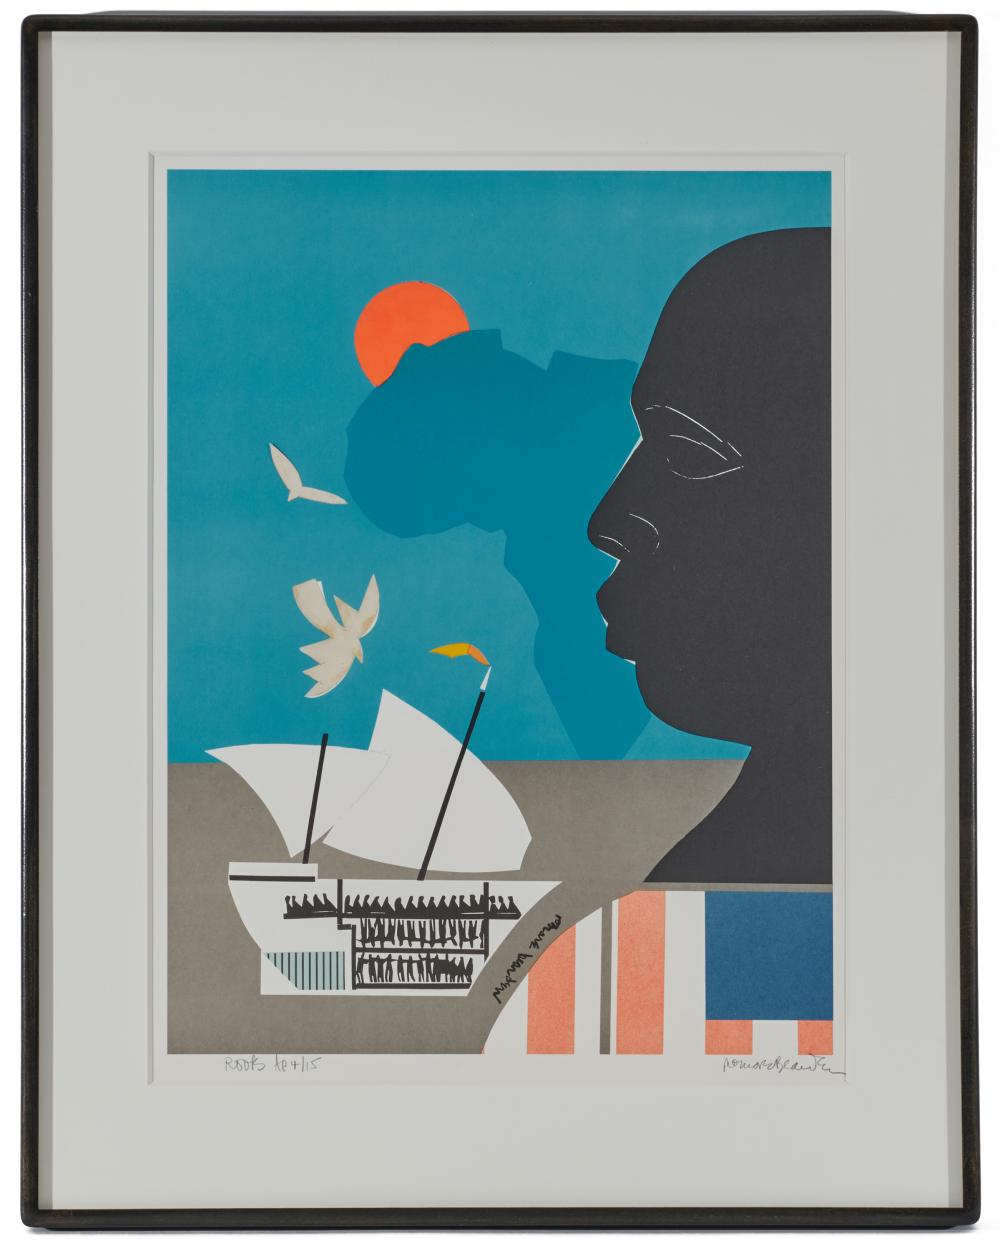 ROMARE HOWARD BEARDEN, (American, 1911-1988), Roots, lithograph with hand collage, image: 23 3/4 x 18 in., frame: 32 3/4 x 26 in.